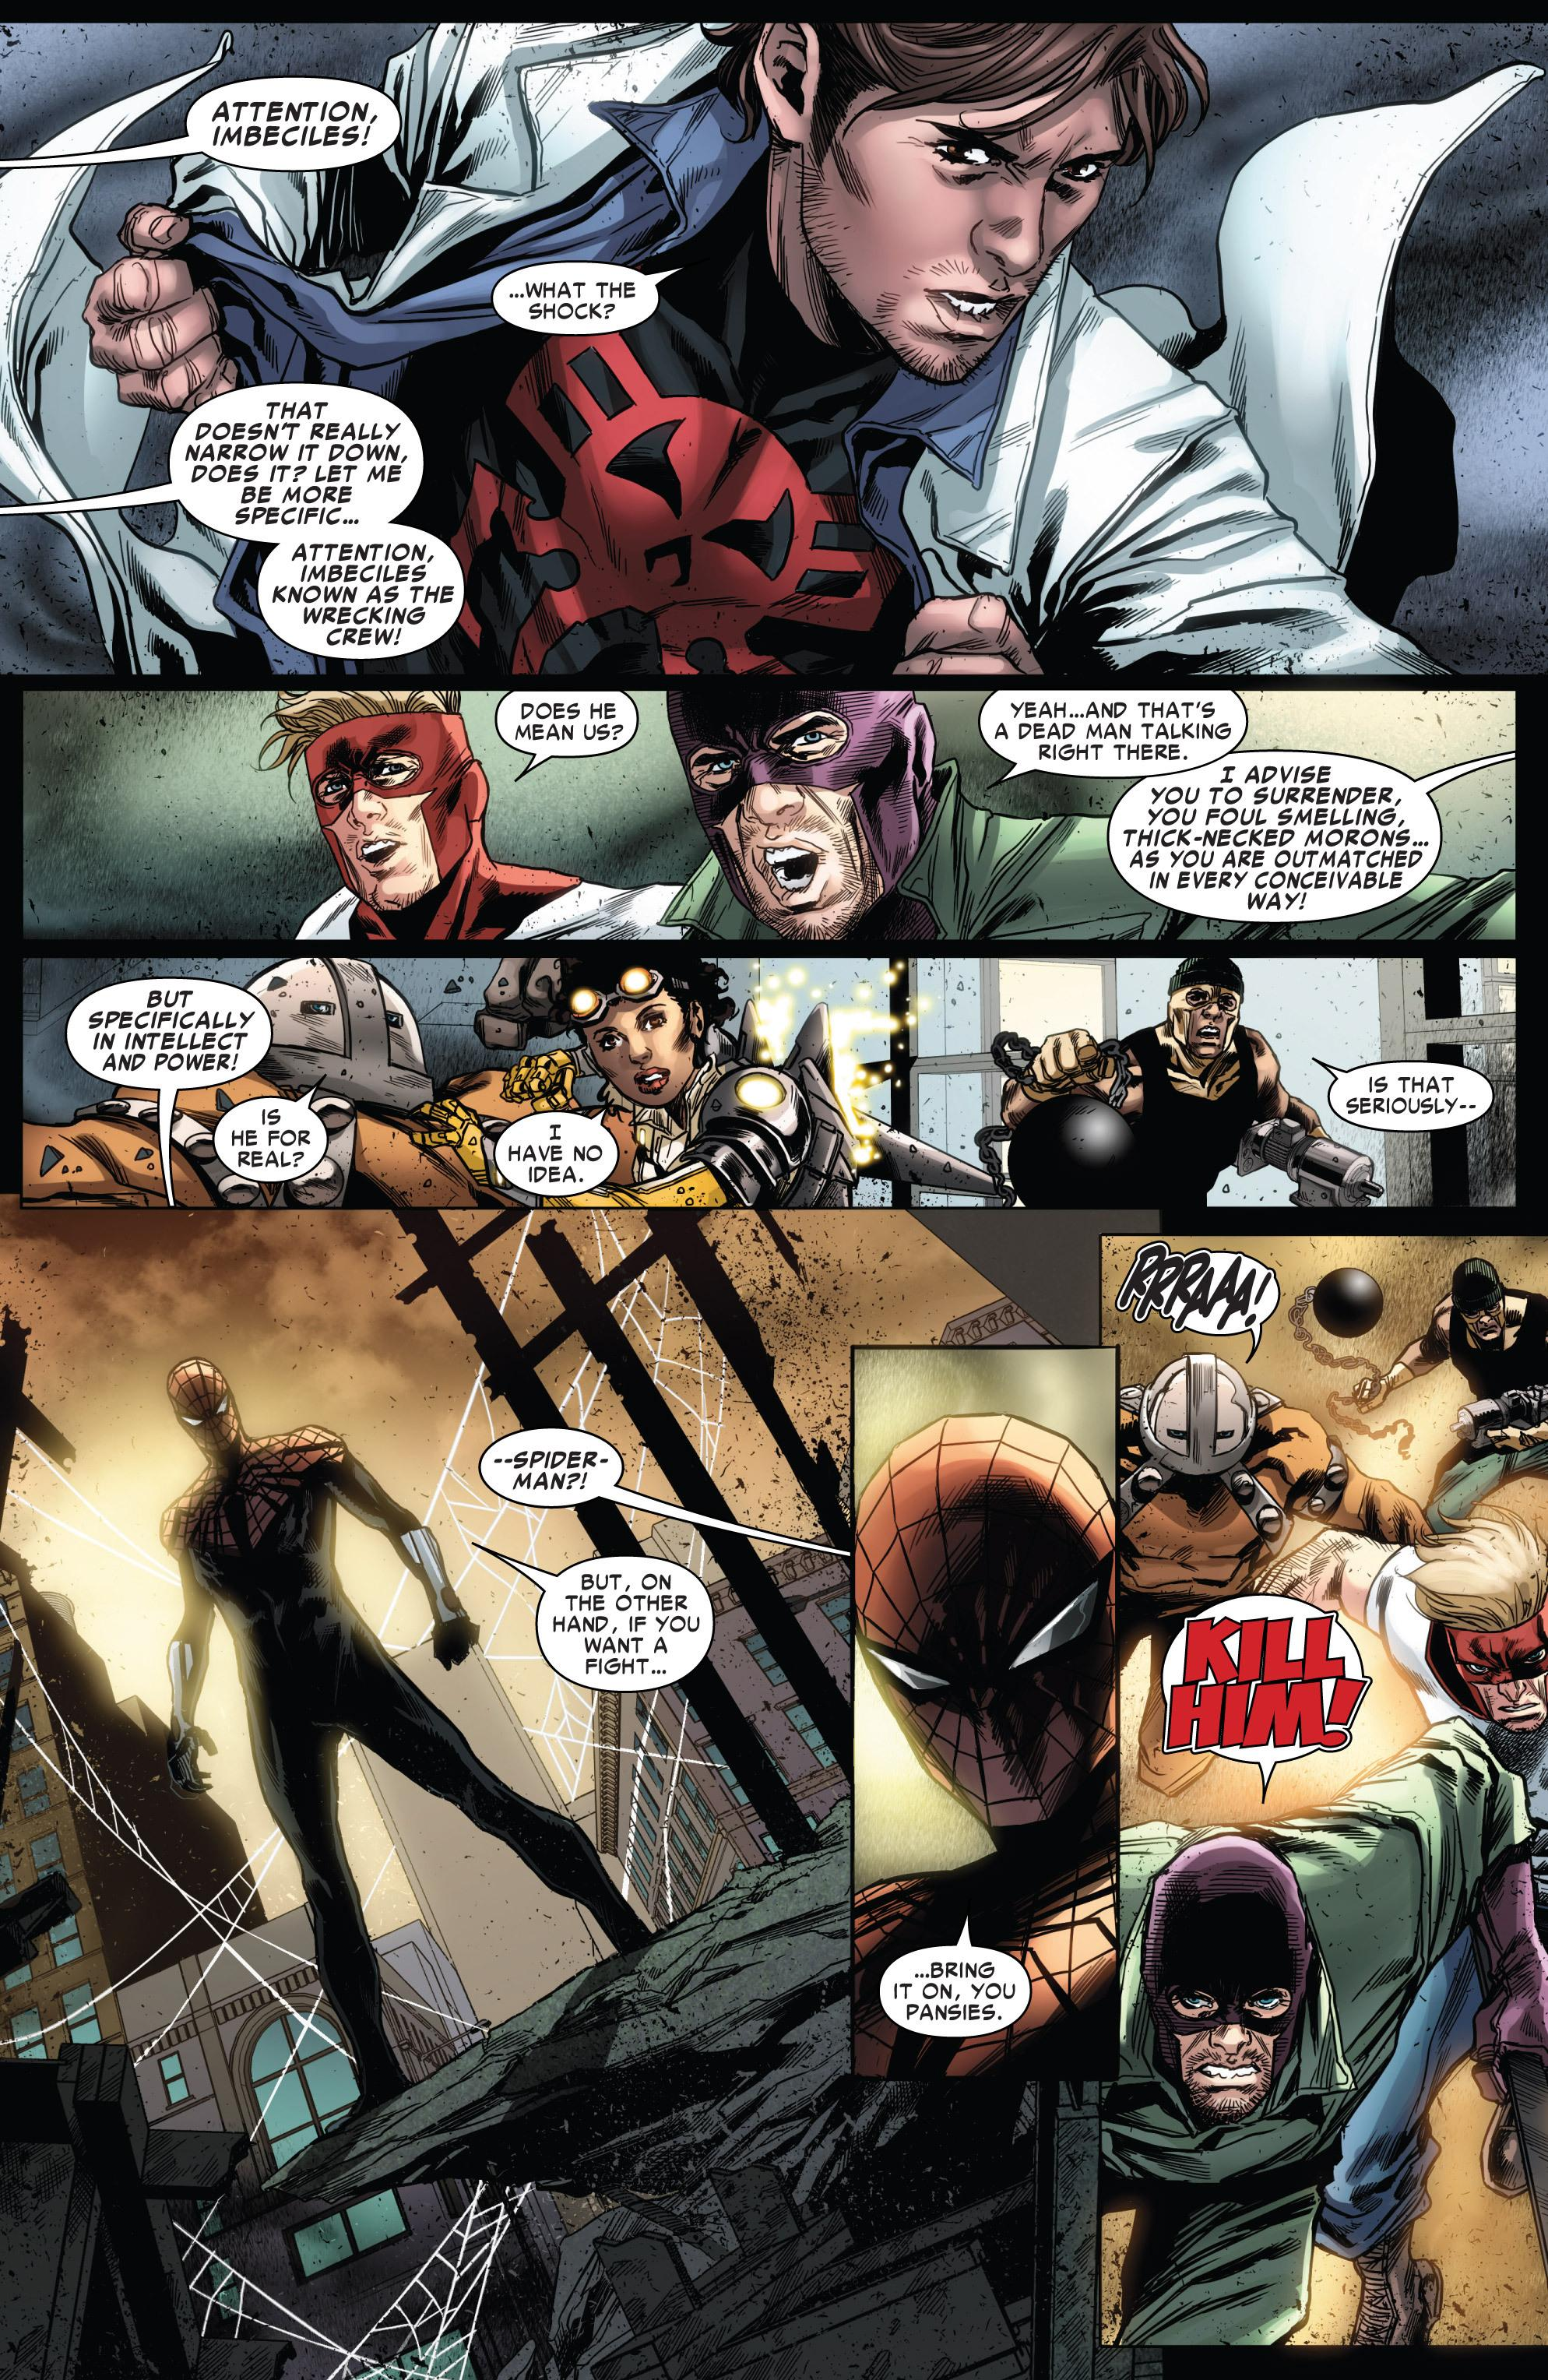 Superior Spider-Man Team-up - Superior Six review